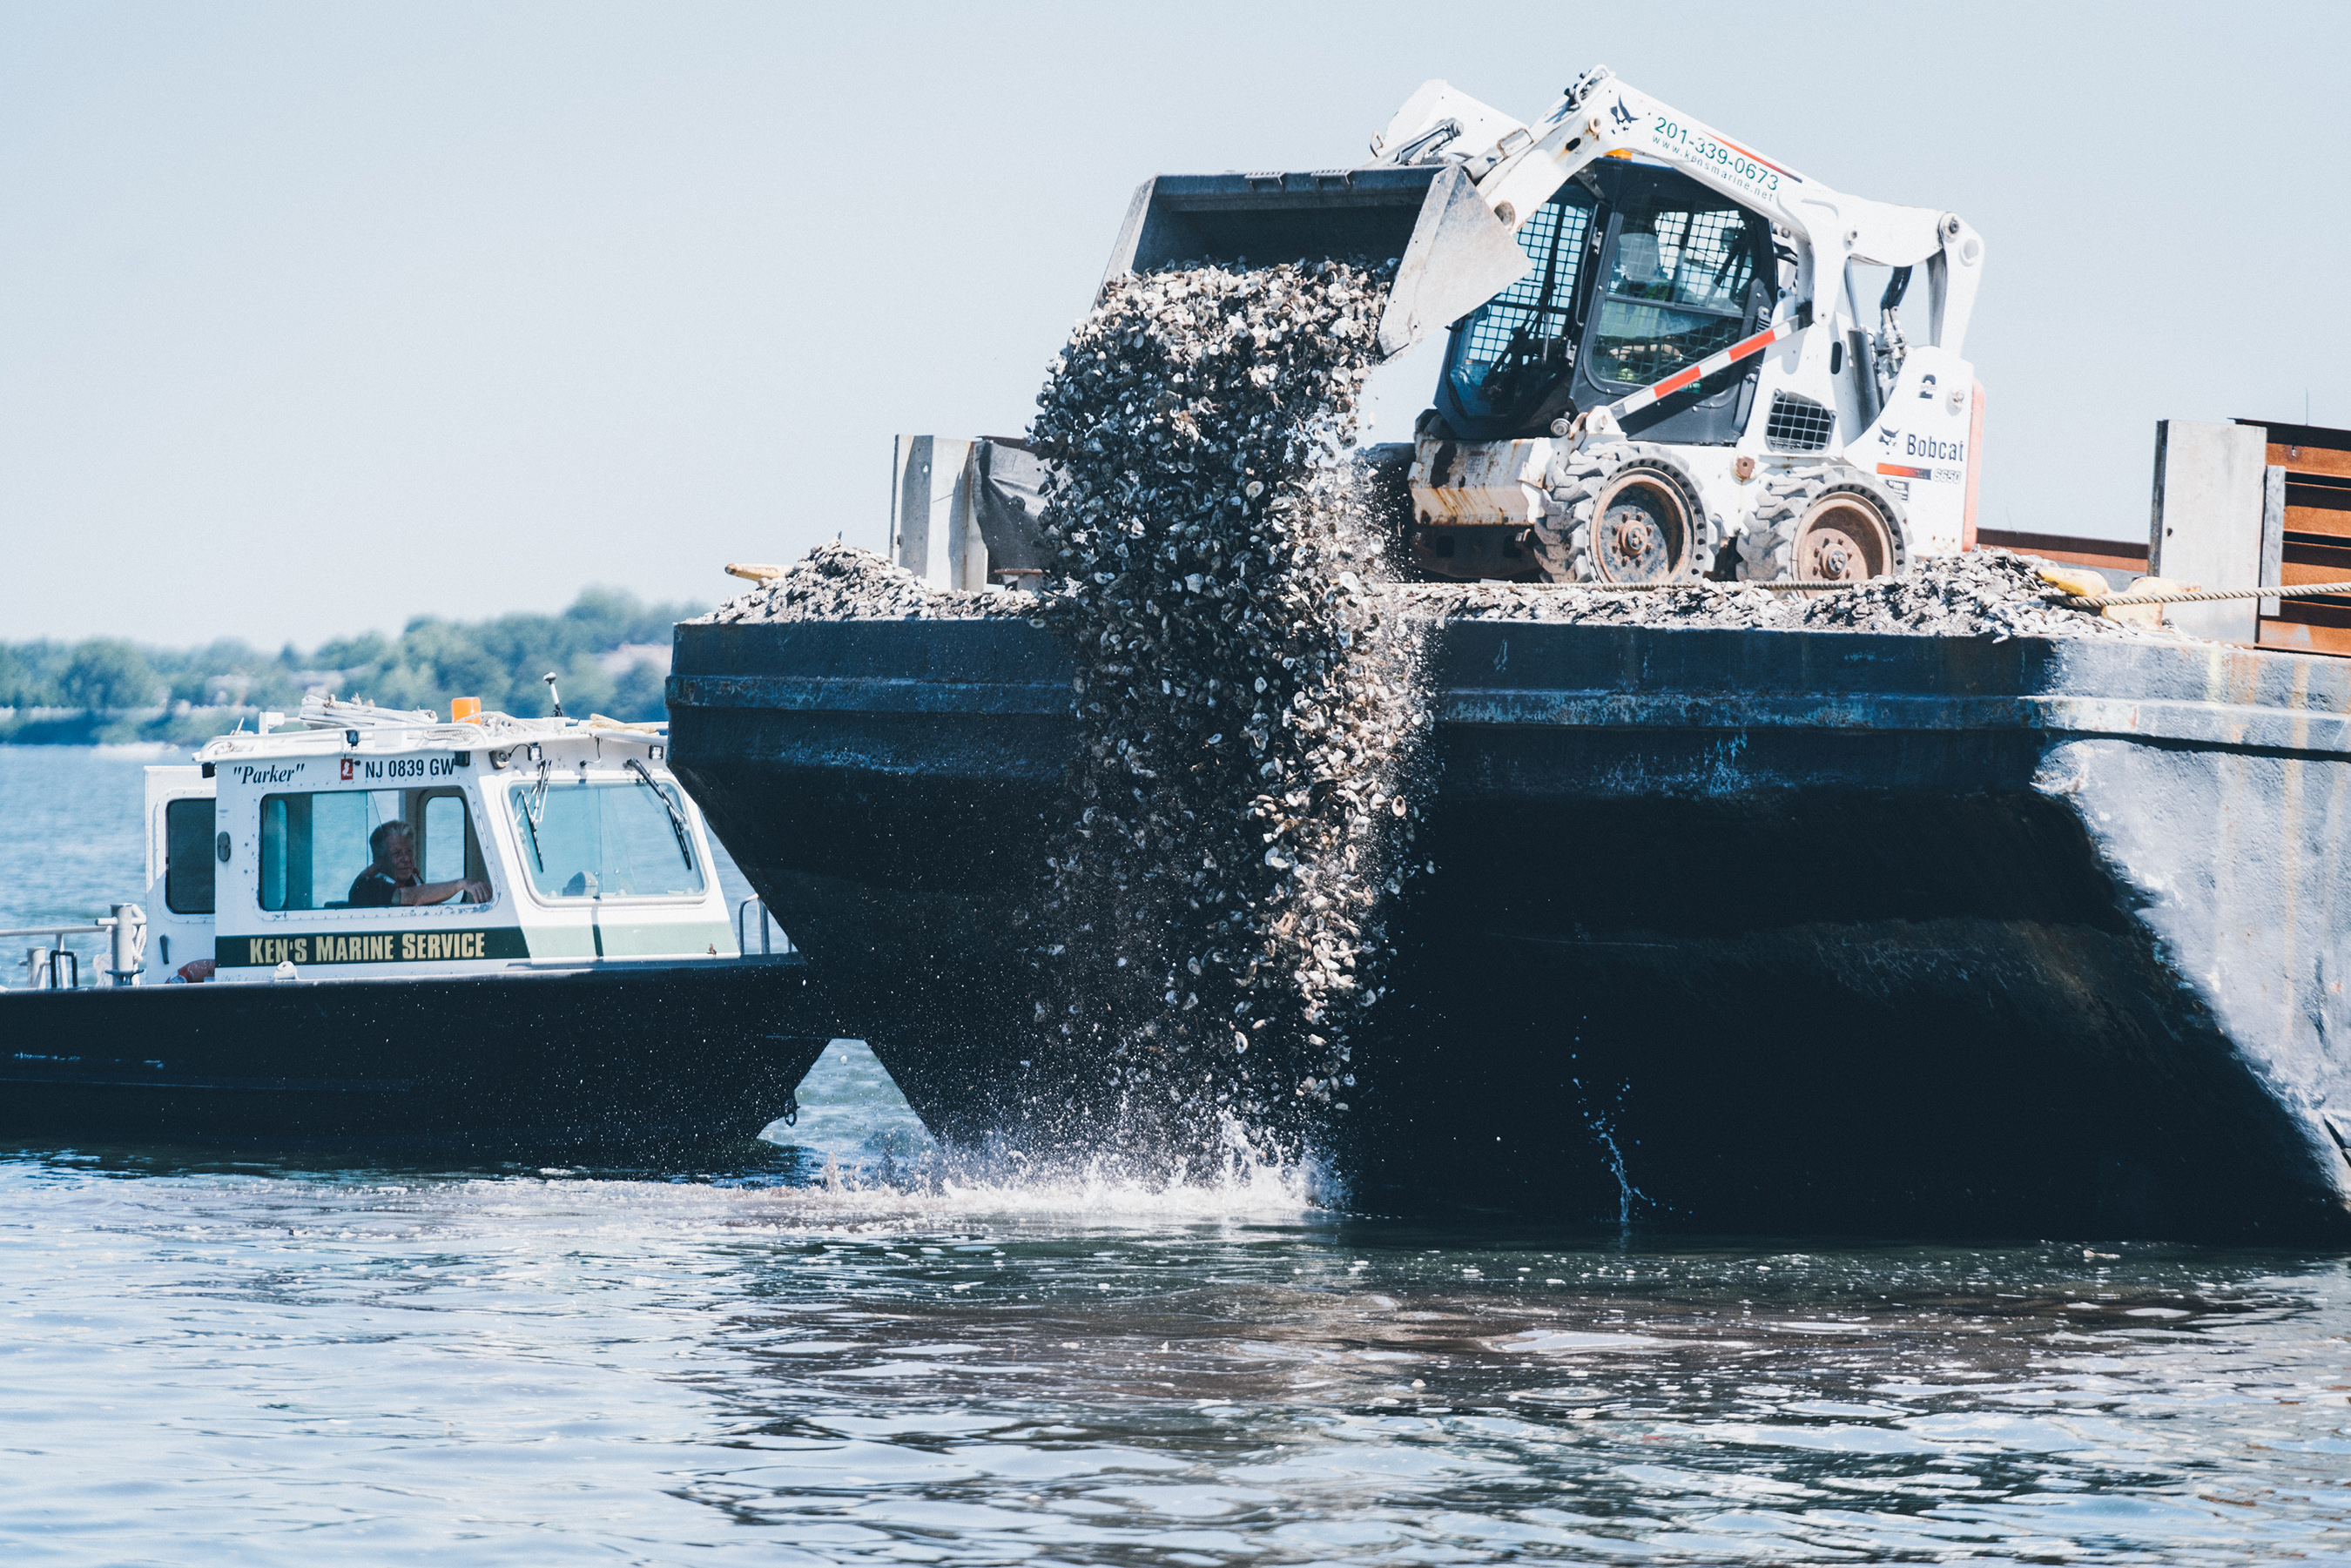 This summer, Billion Oyster Project will deploy over 500,000 pounds of oyster shells and 30 million oysters set on shells within 200 gabion reef structures at the mouth of the Bronx River in Soundview. This project alone has more than doubled their restoration impact in New York Harbor. #ShuckFromHome. Photo Credit: Jose Silva